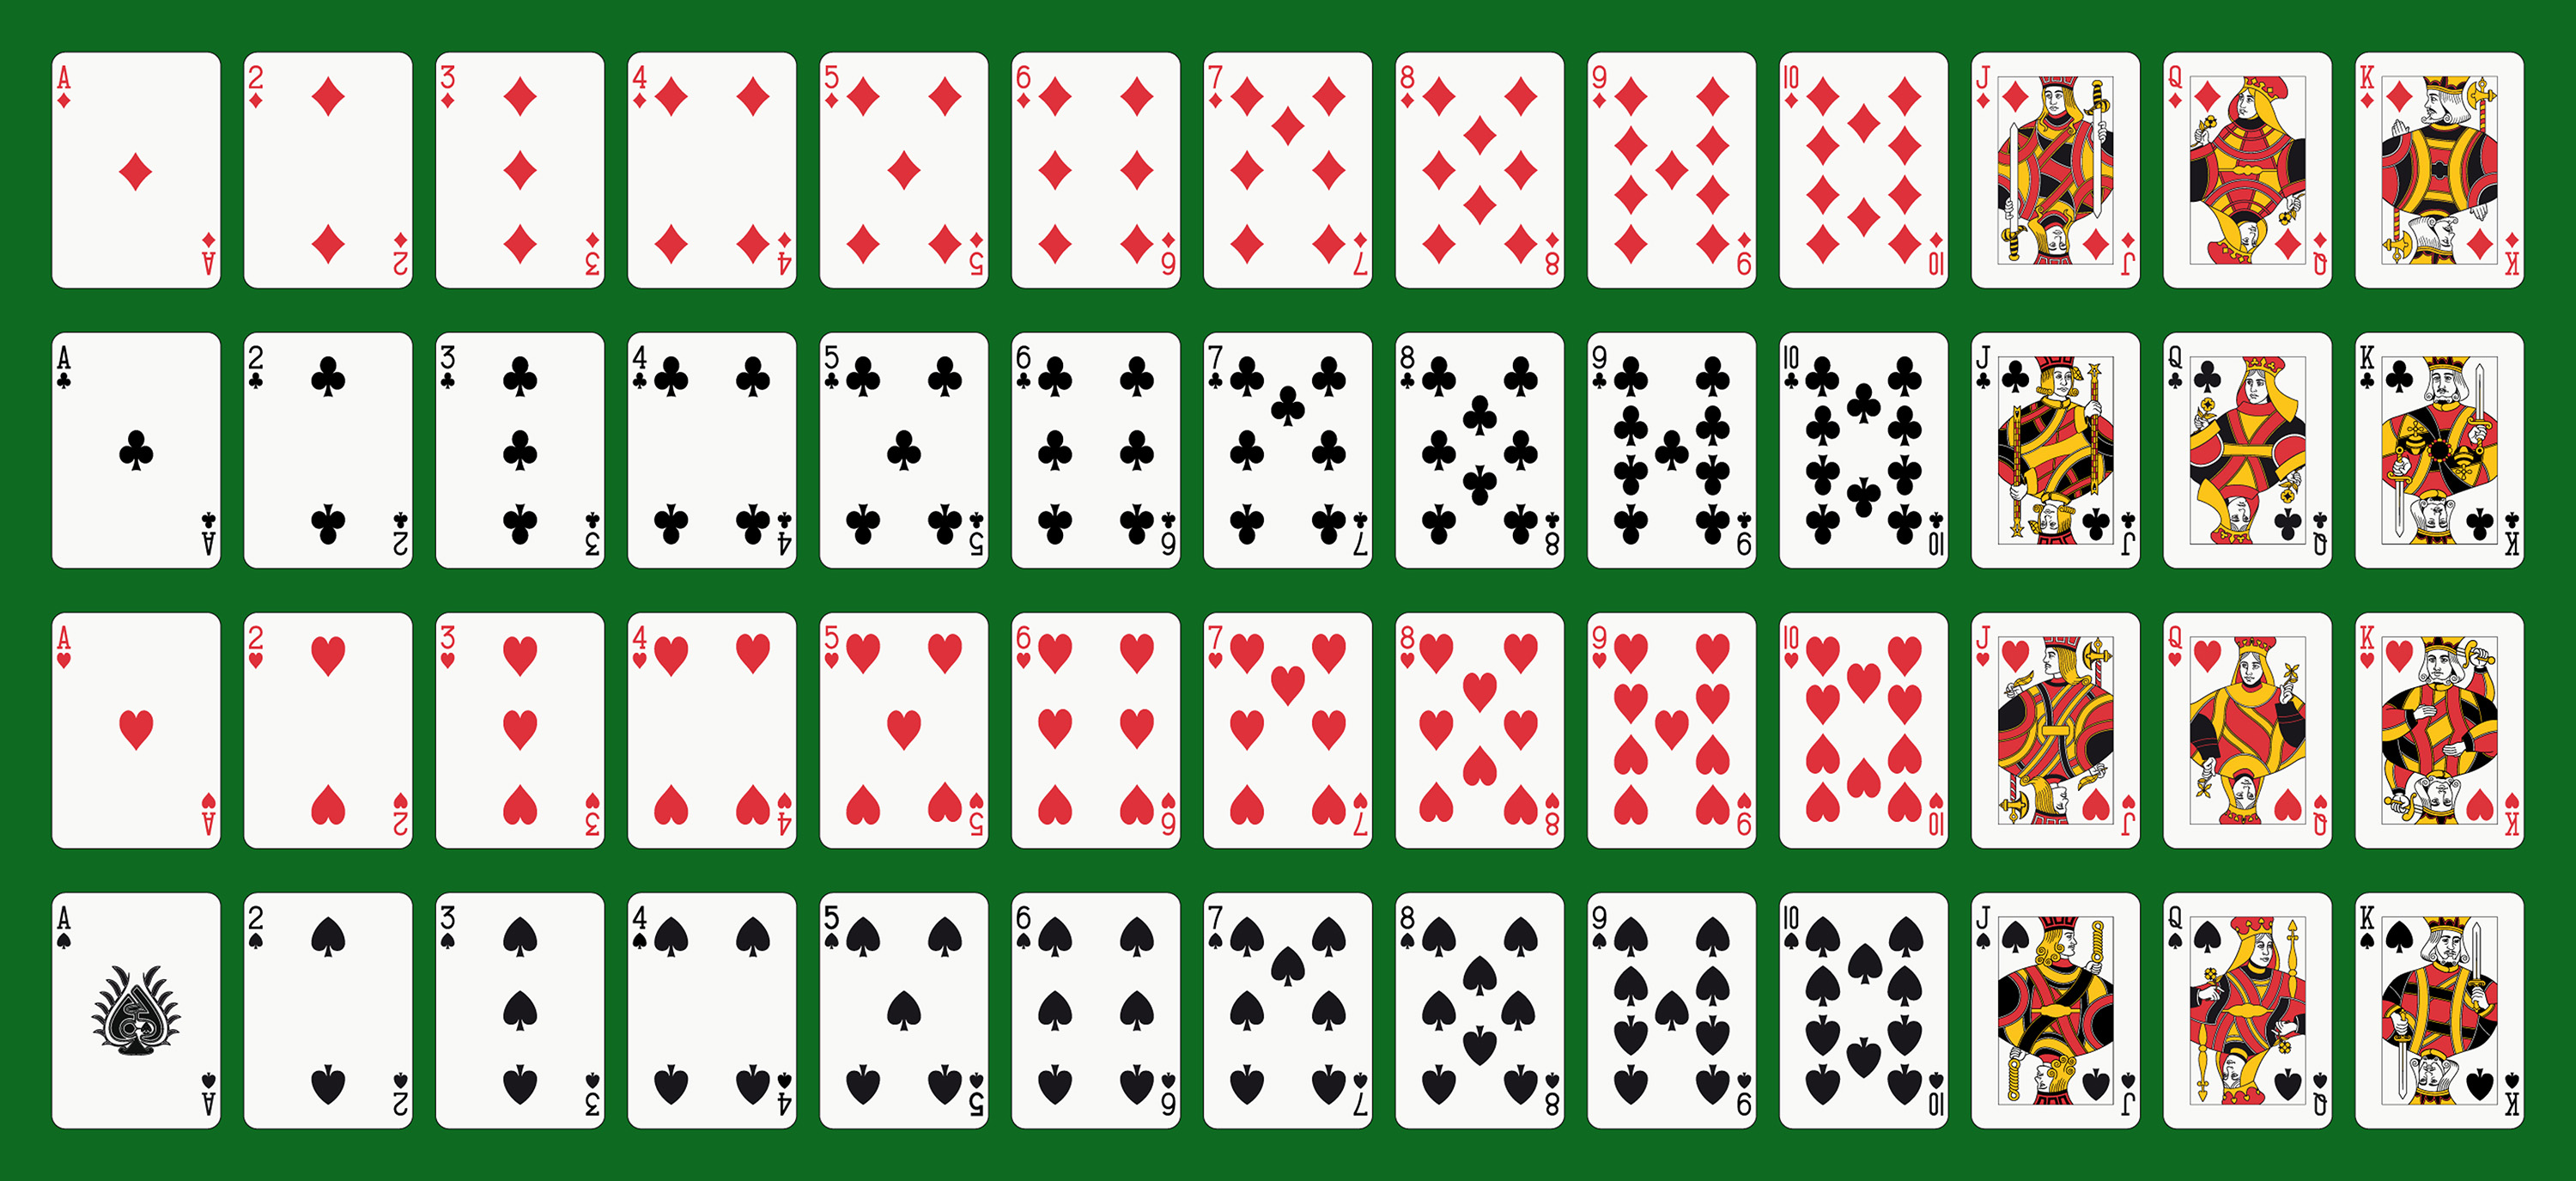 Standard deck of 52 playing cards.